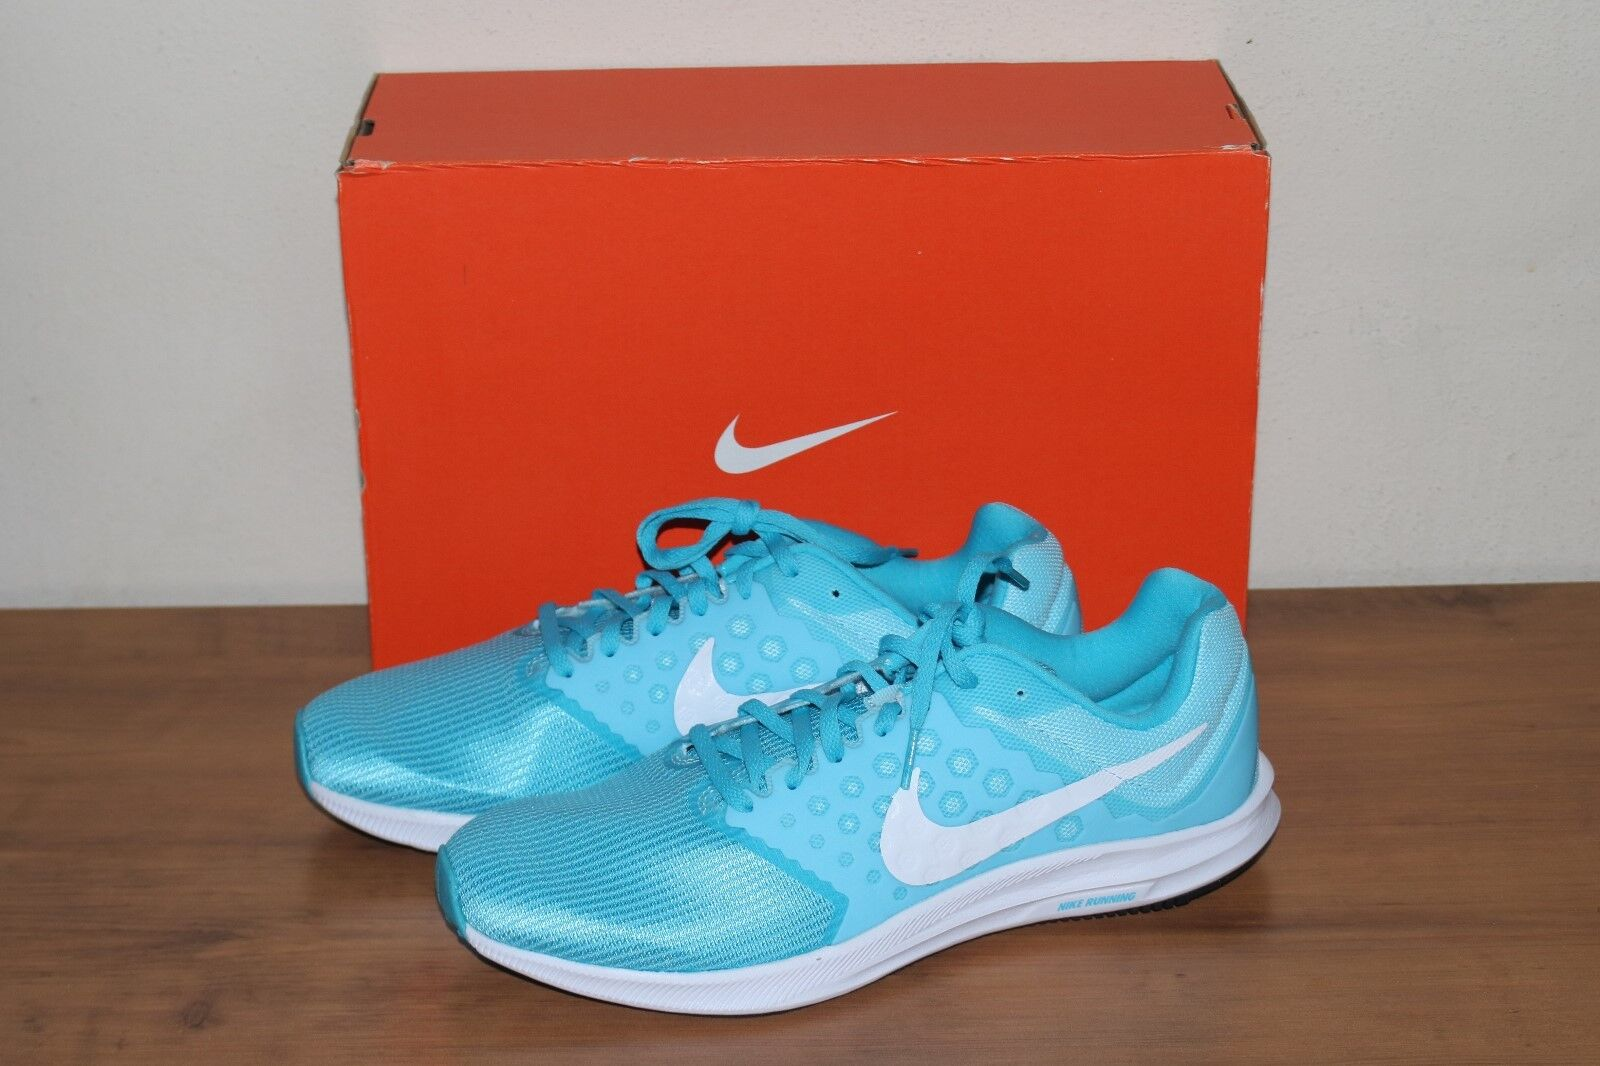 New Nike Downshifter 7 Blue White Running Training Shoes Women's Size 11.5